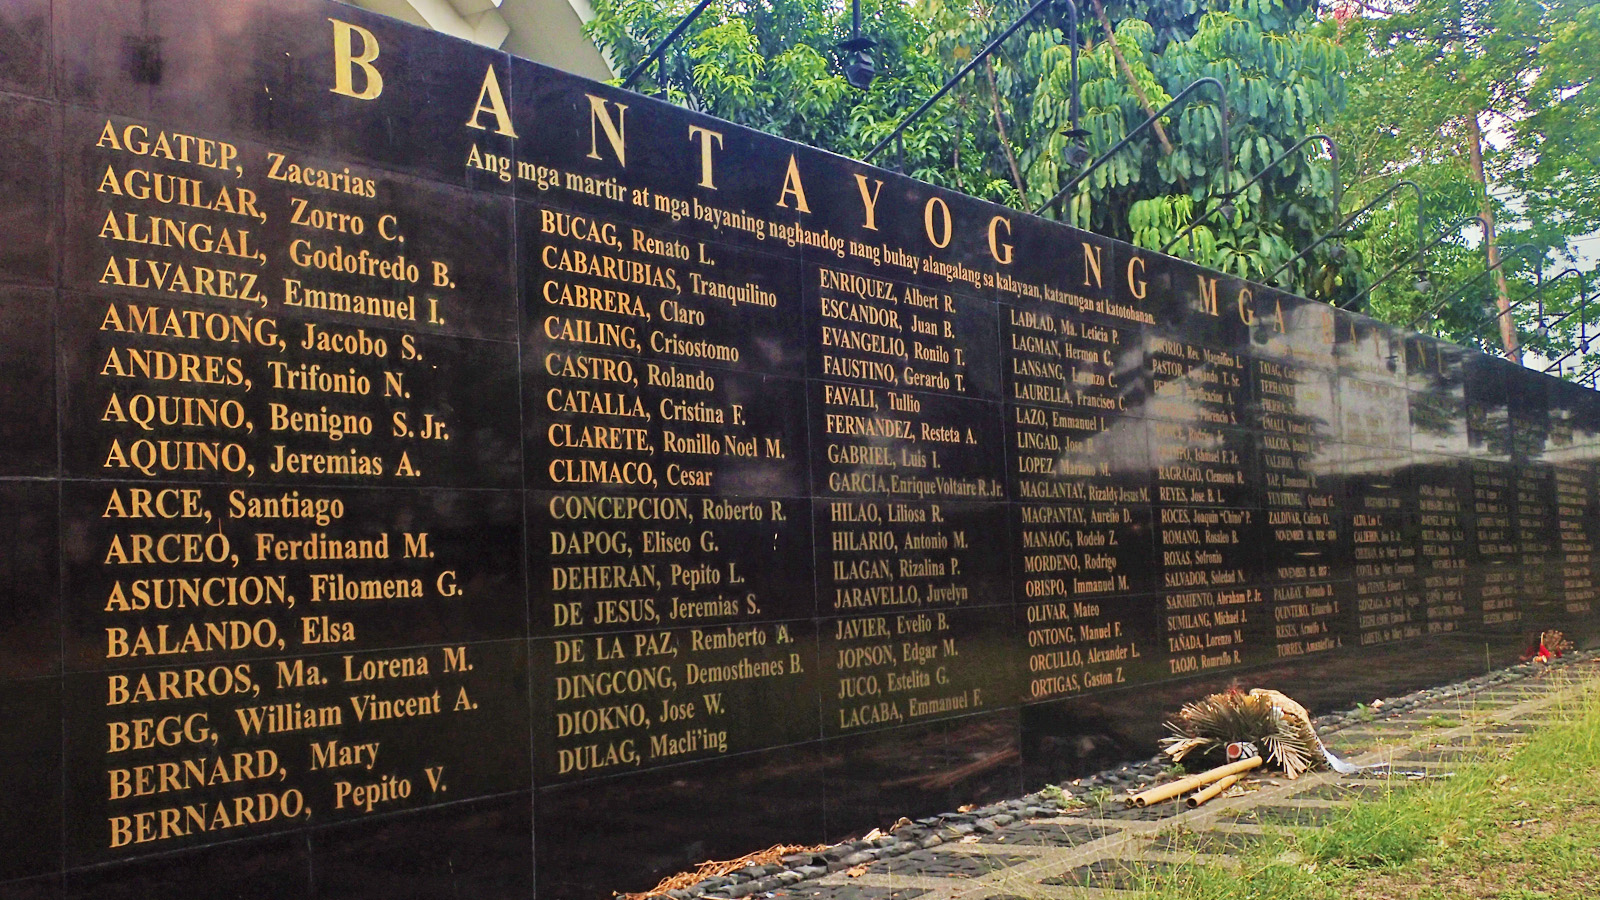 HEROESu00e2u0080u0099 AND MARTYRSu00e2u0080u0099 NAMES. Some of the names up close. Occasionally you may find flowers offered in the heroes' and martyrs'u0080u0099 memory.